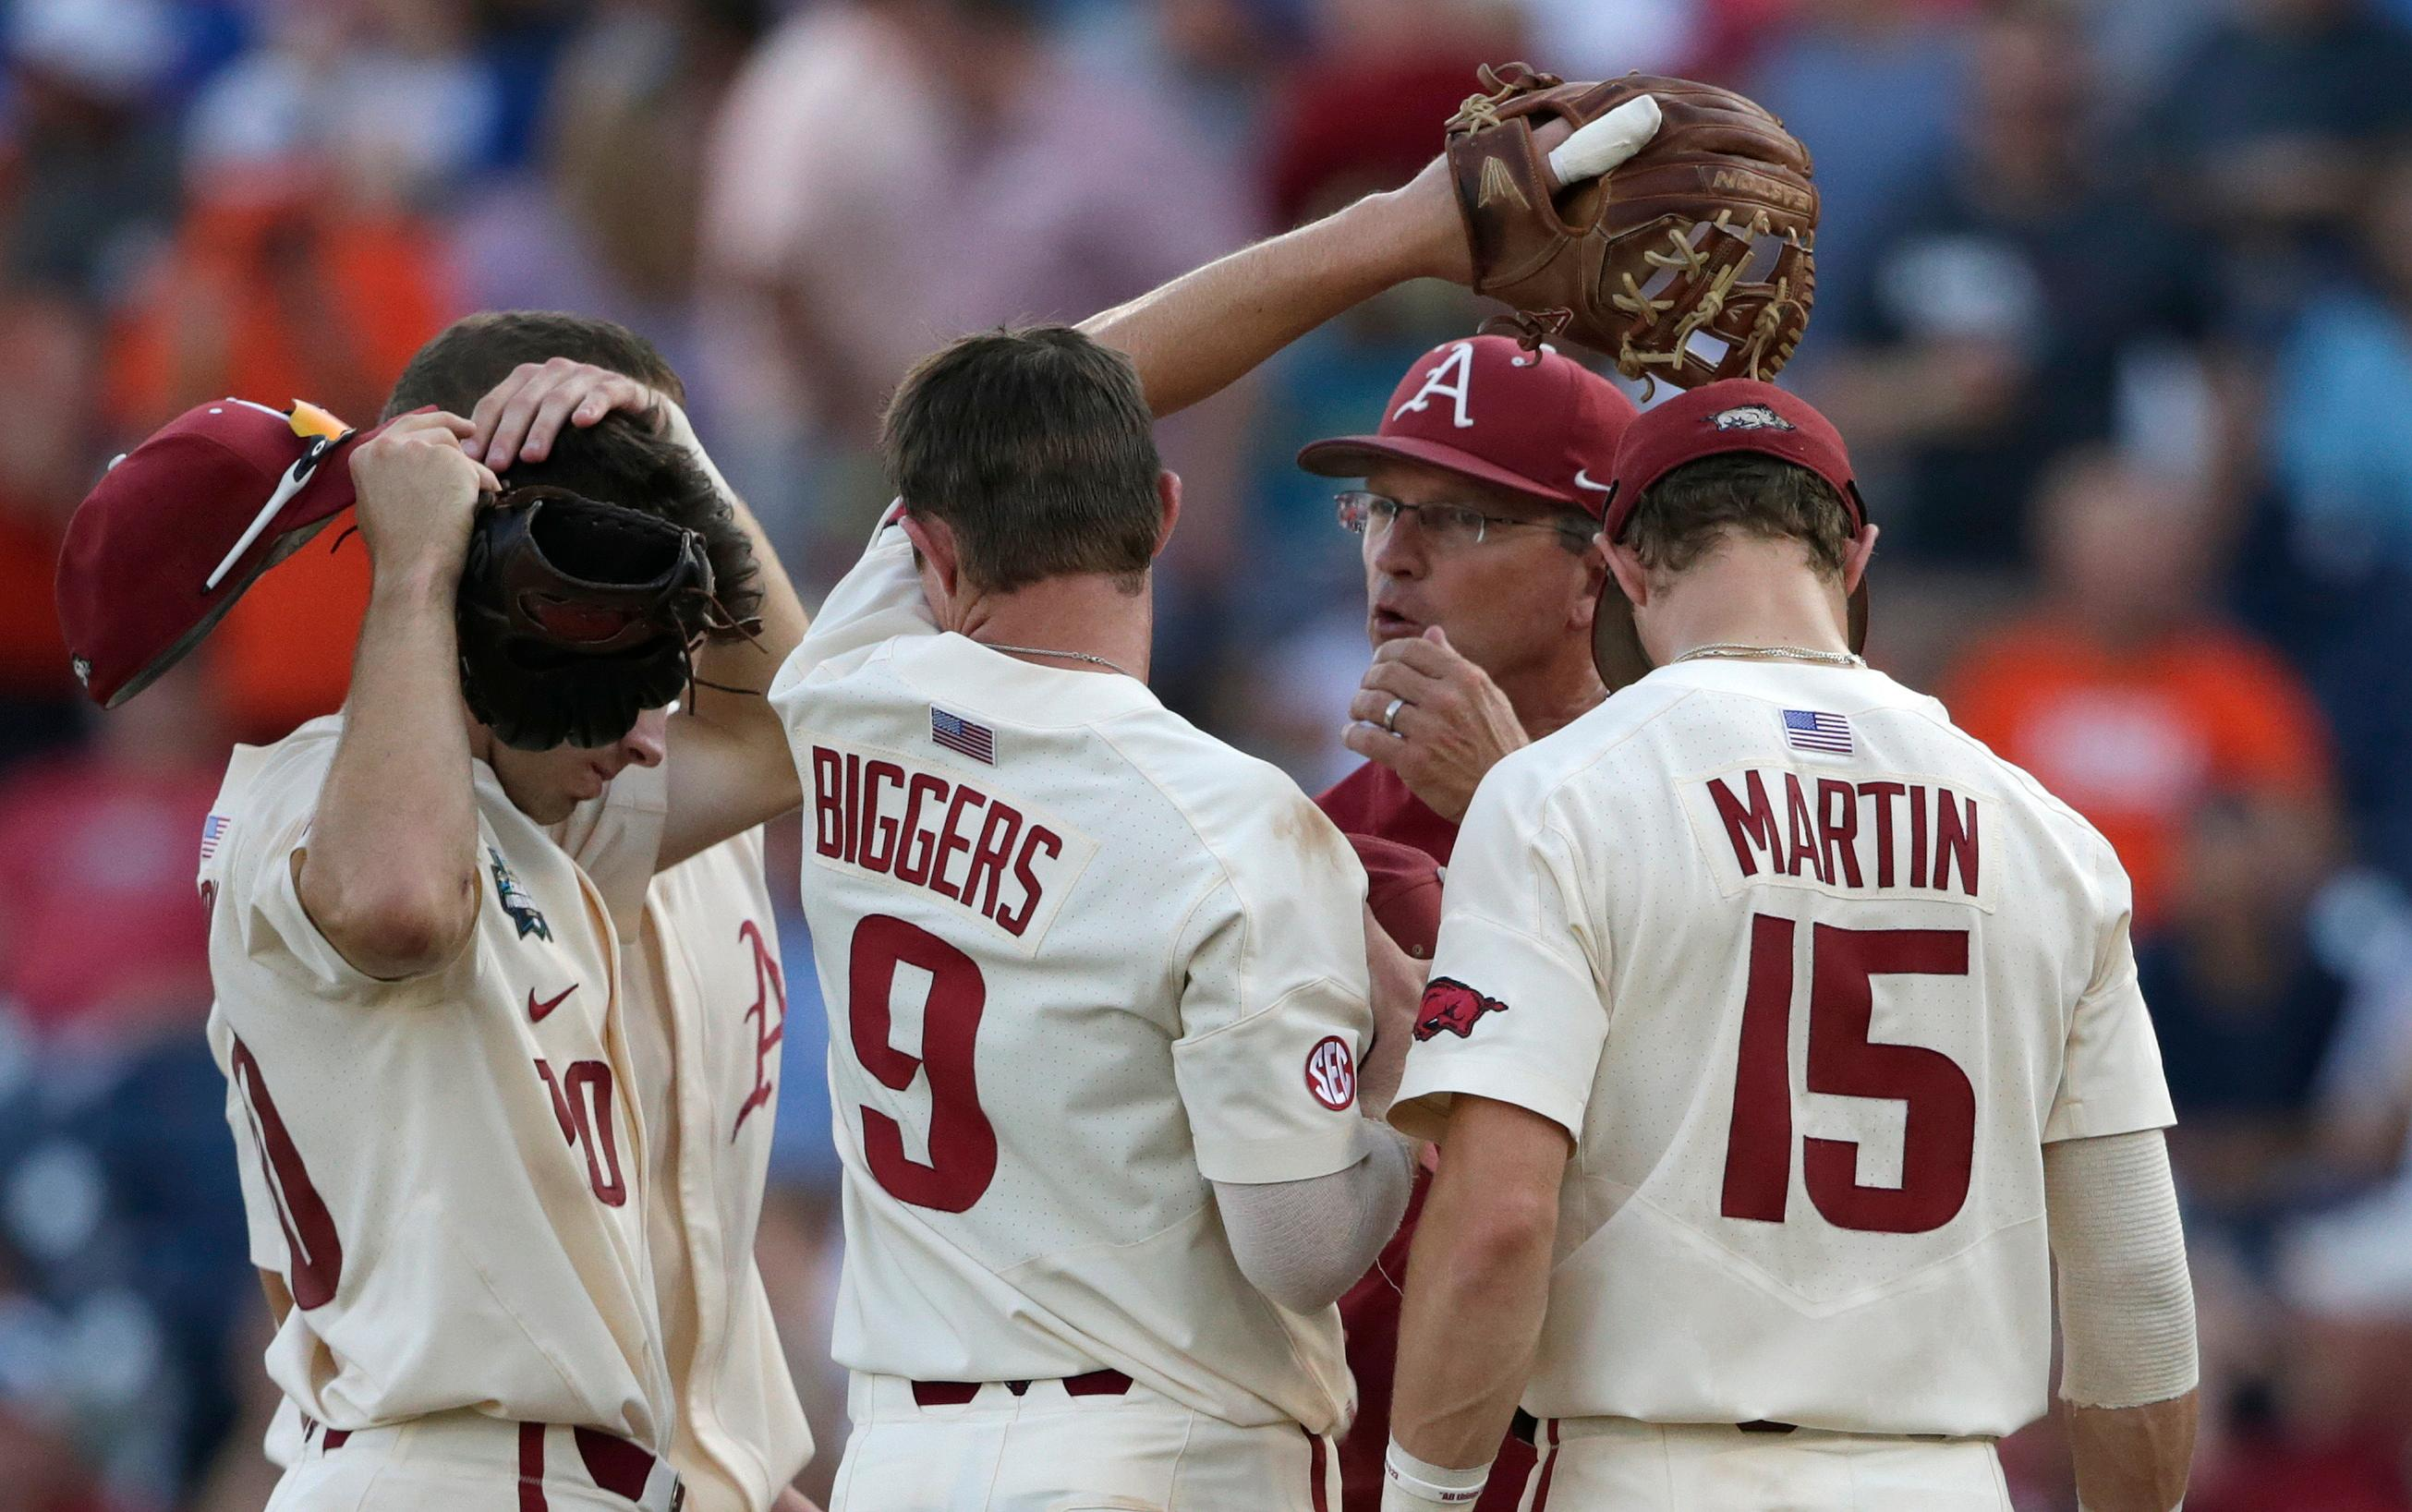 Arkansas coach Dave Van Horn, center, talks to players on the mount as he changes pitchers during the fifth inning against Oregon State in Game 3 of the NCAA College World Series baseball finals in Omaha, Neb., Thursday, June 28, 2018. (AP Photo/Nati Harnik)